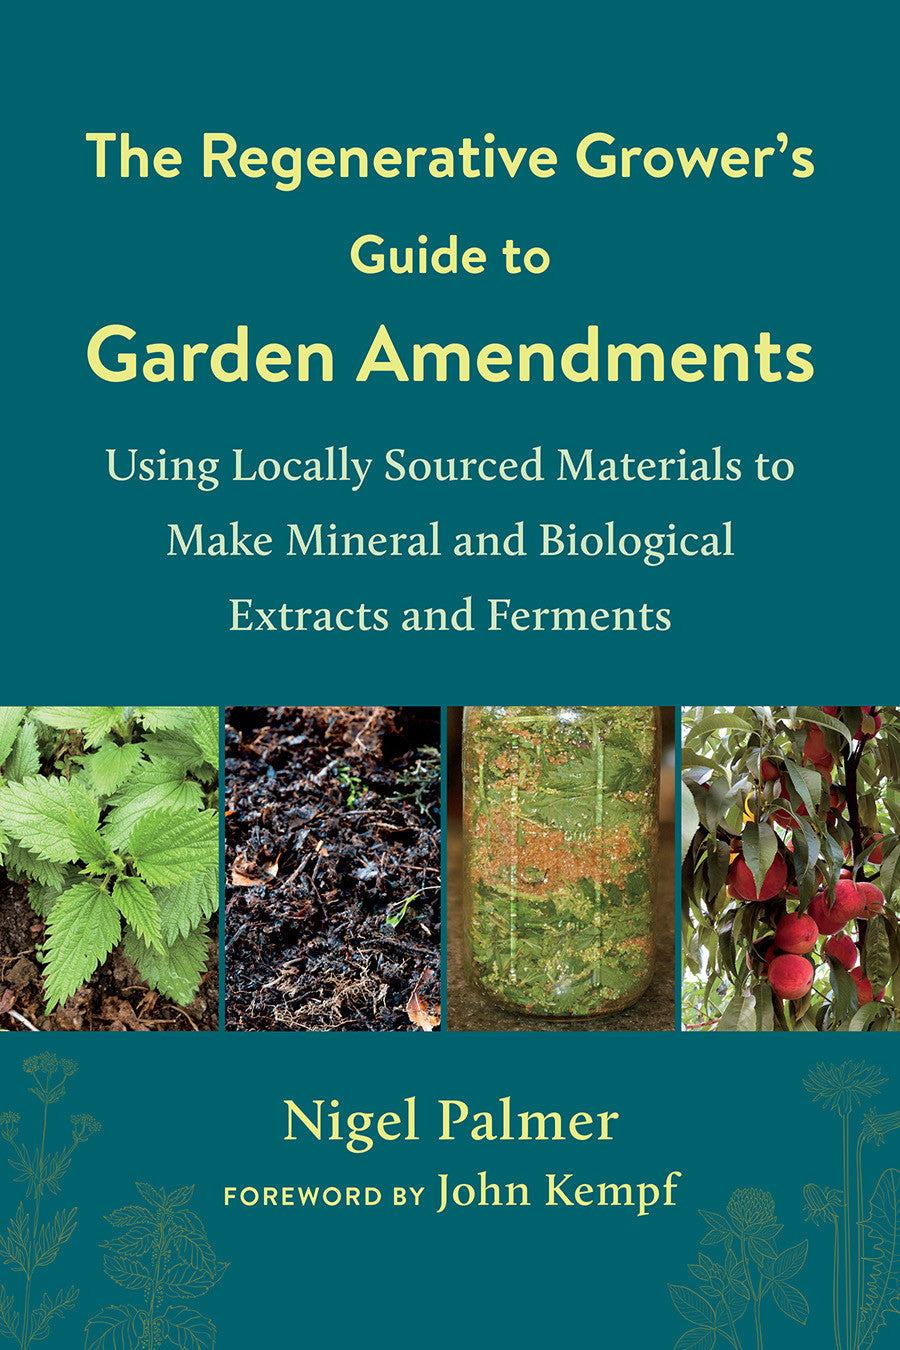 The Regenerative Grower's Guide to Garden Amendments by Nigel Palmer